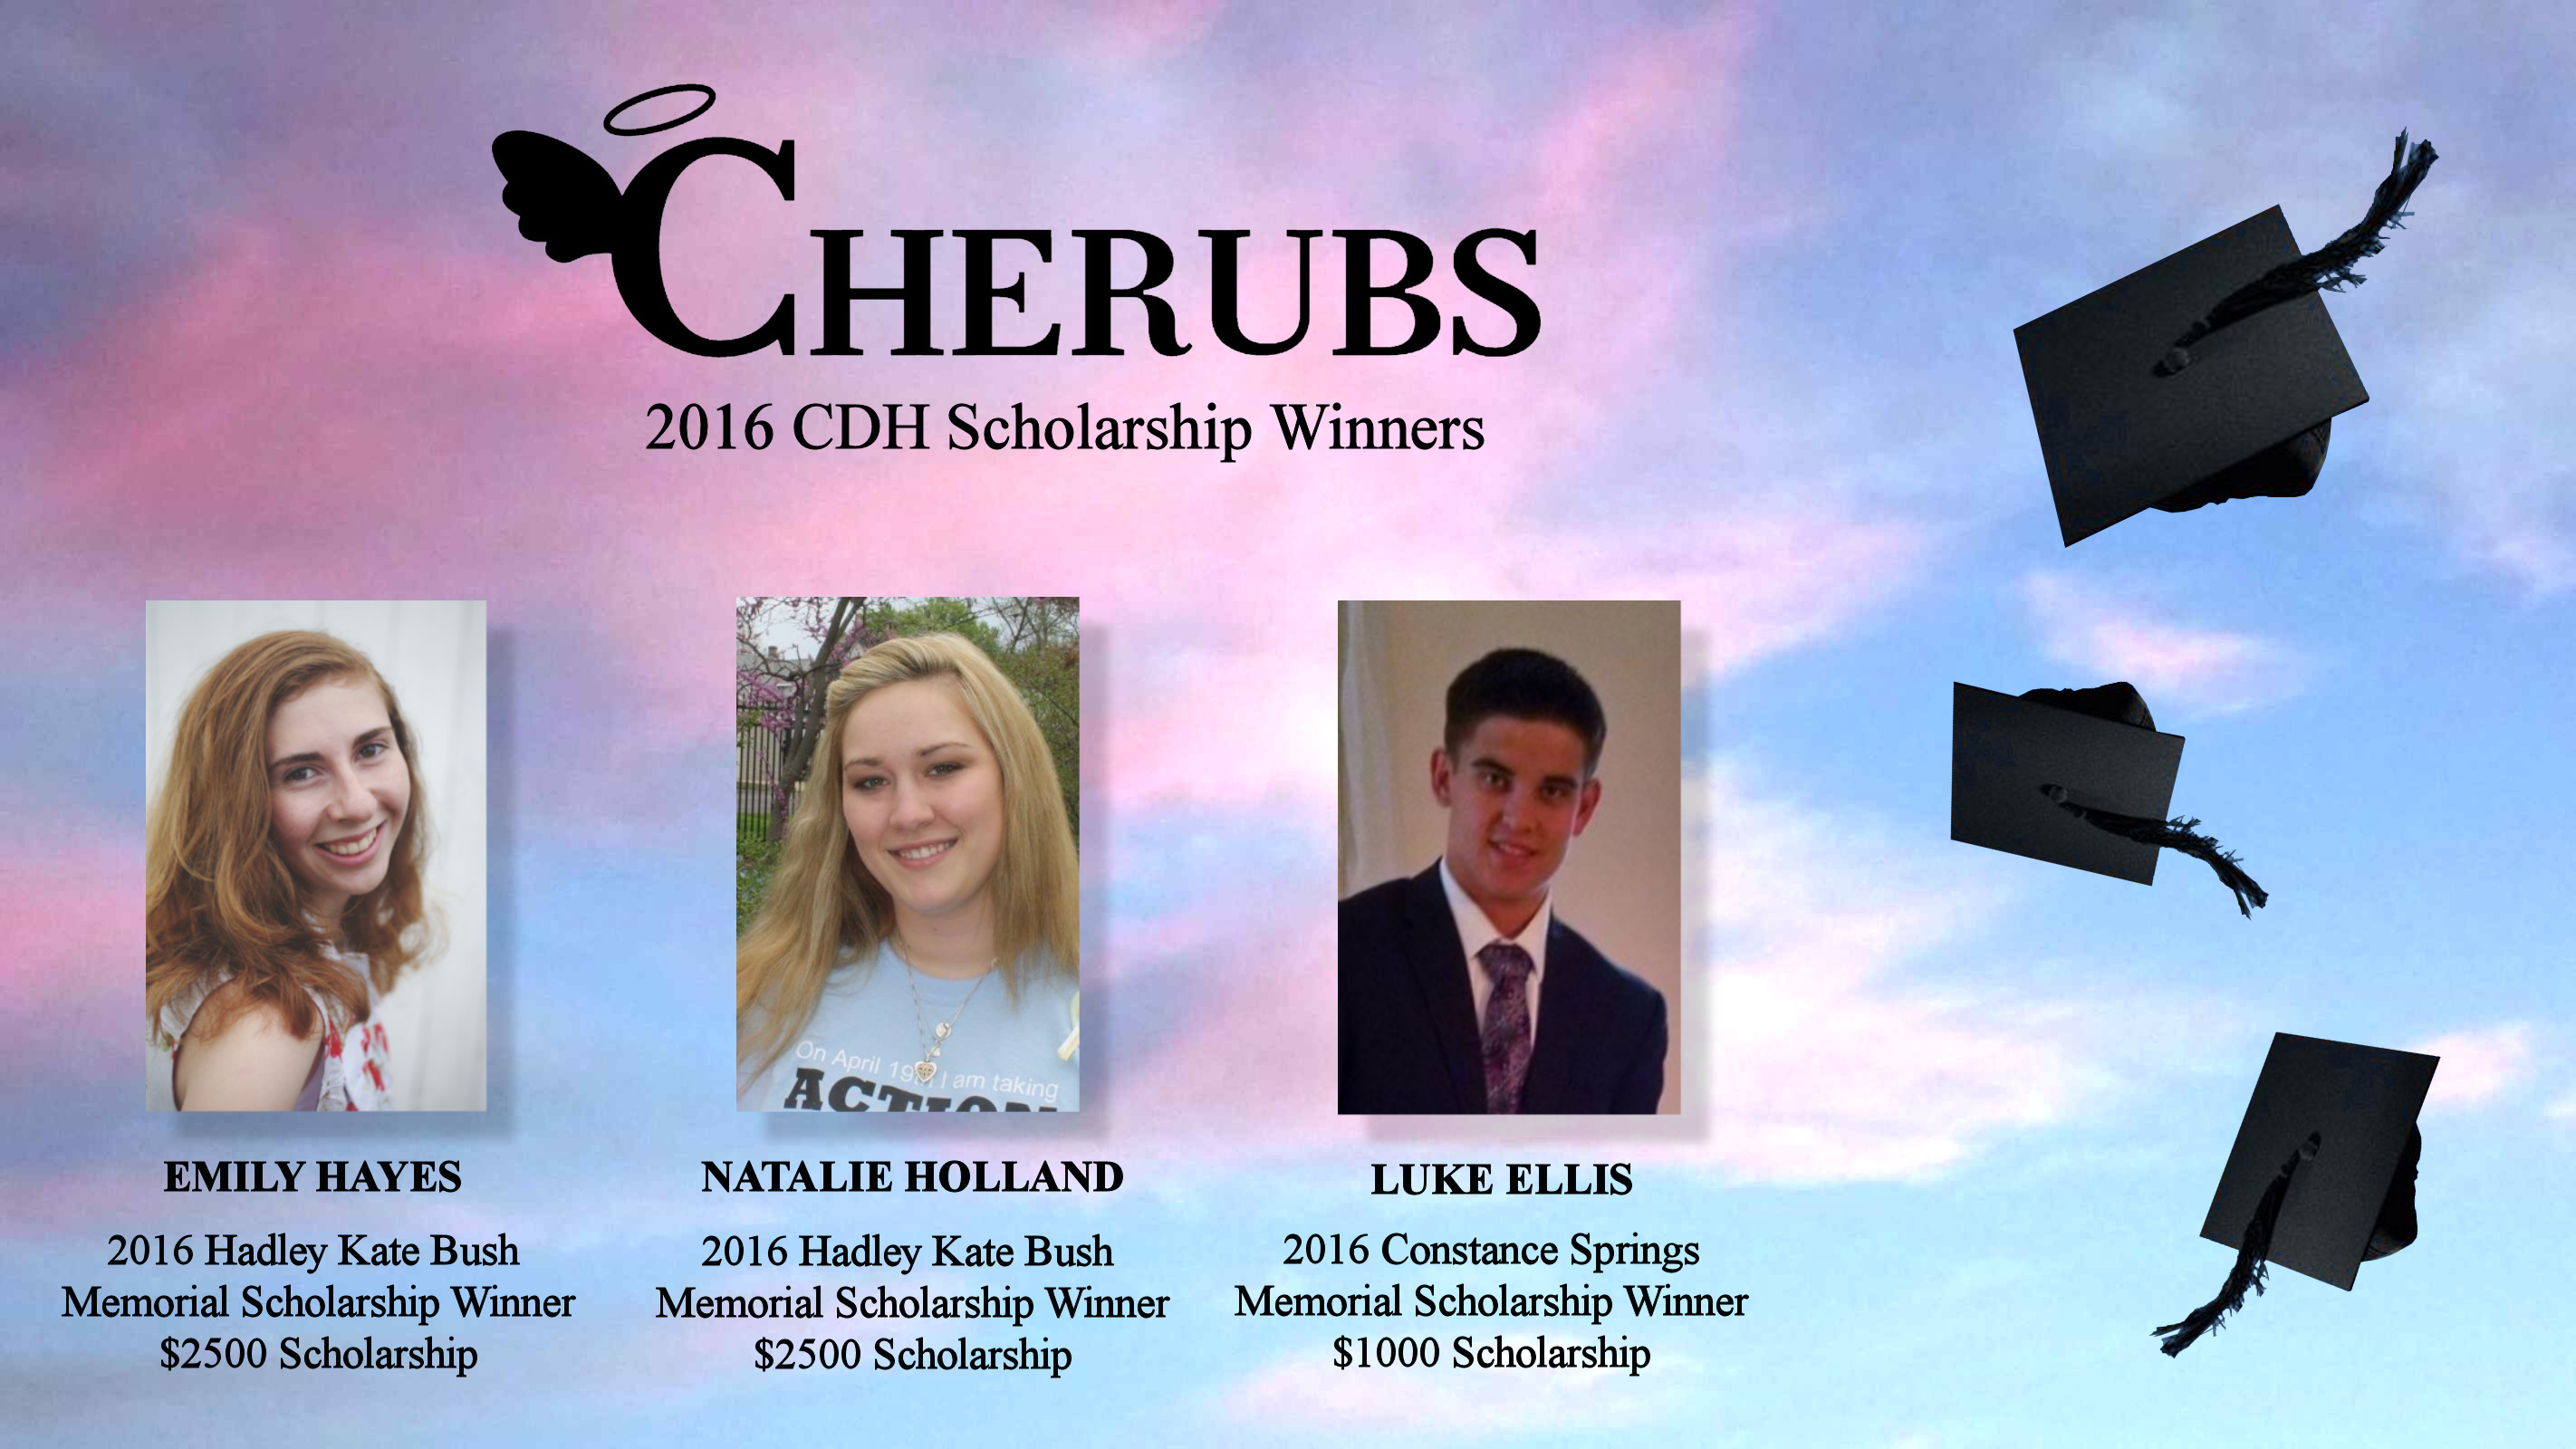 2016 CDH Scholarship Winners